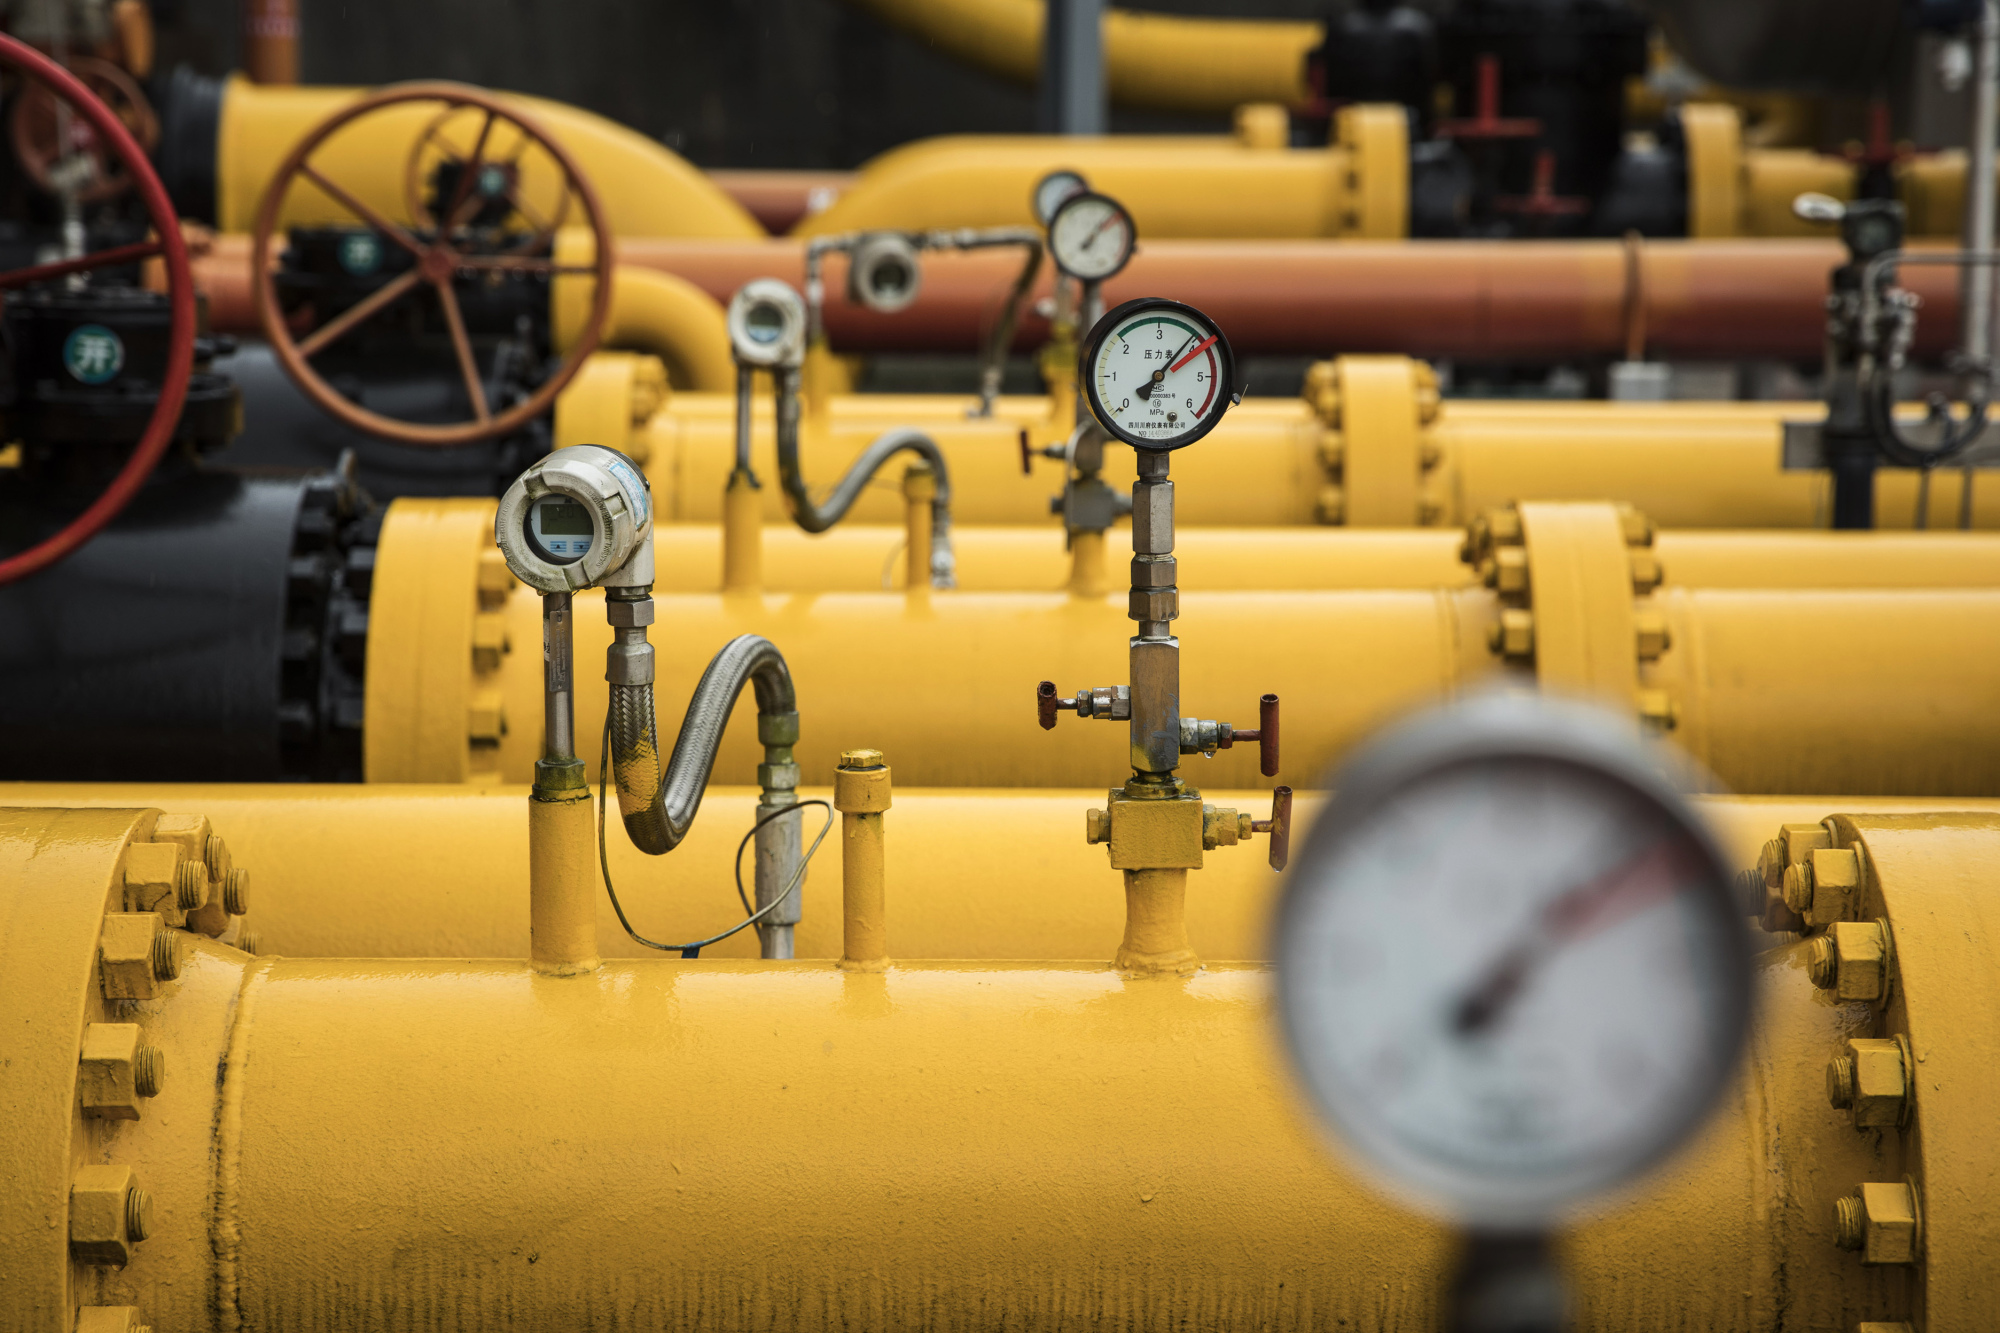 Pressure gauges sit on pipework at a shale gas collection and transfer facility at the Fuling shale gas project site, operated by Sinopec Chongqing Fuling Shale Gas Exploration and Development Co., a unit of China Petrochemical Corp. (Sinopec), in Jiaoshiba, Chongqing Municipality, China.